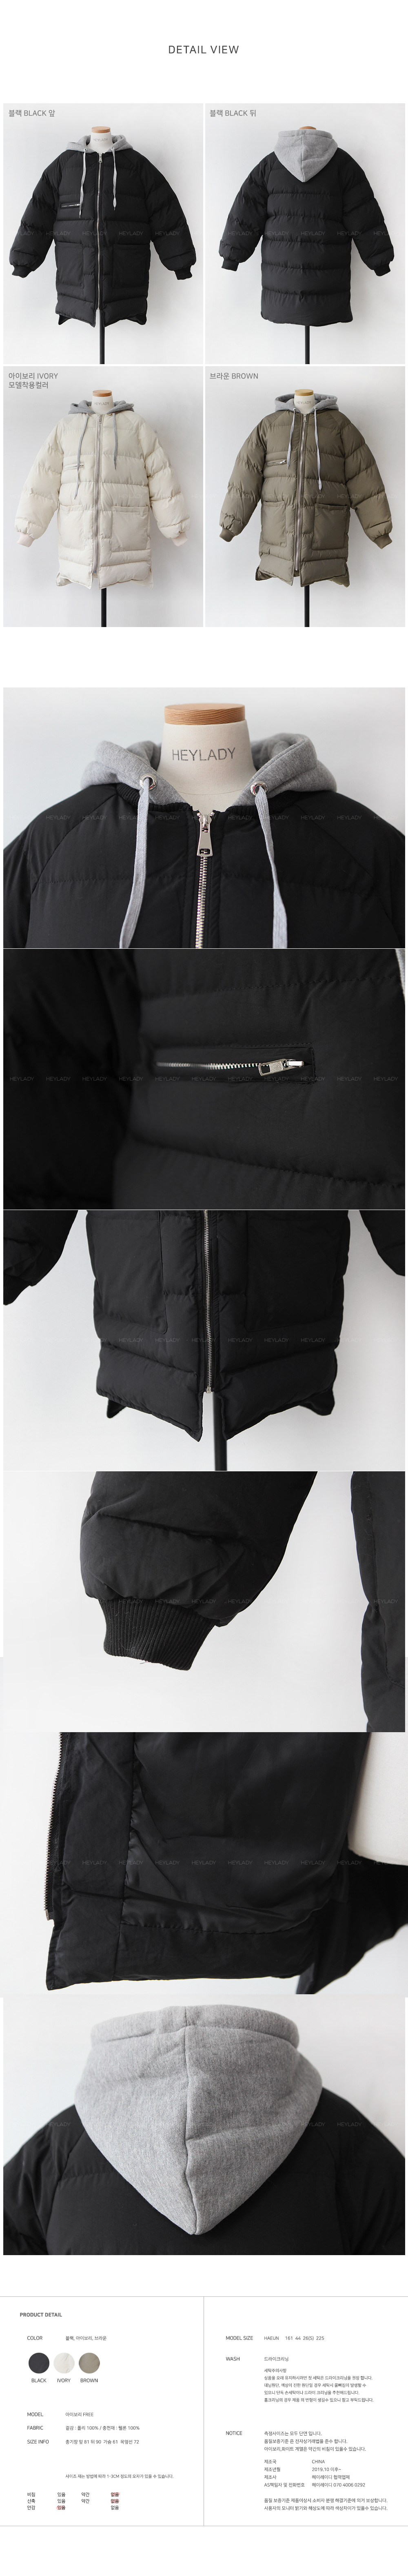 Keron hooded long padding